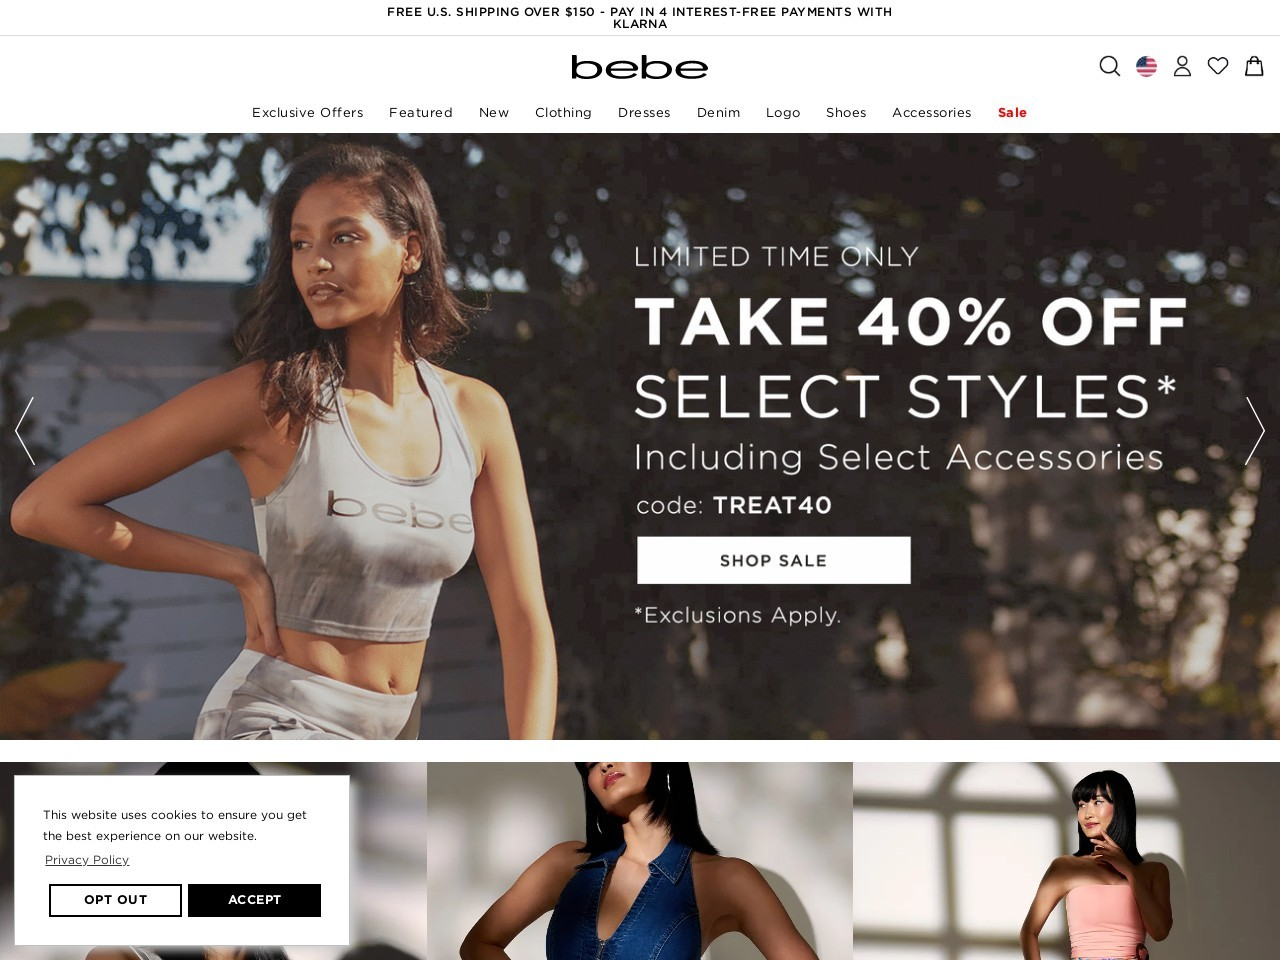 http://www.bebe.com/content.jsp?pageName=workdaytosoiree